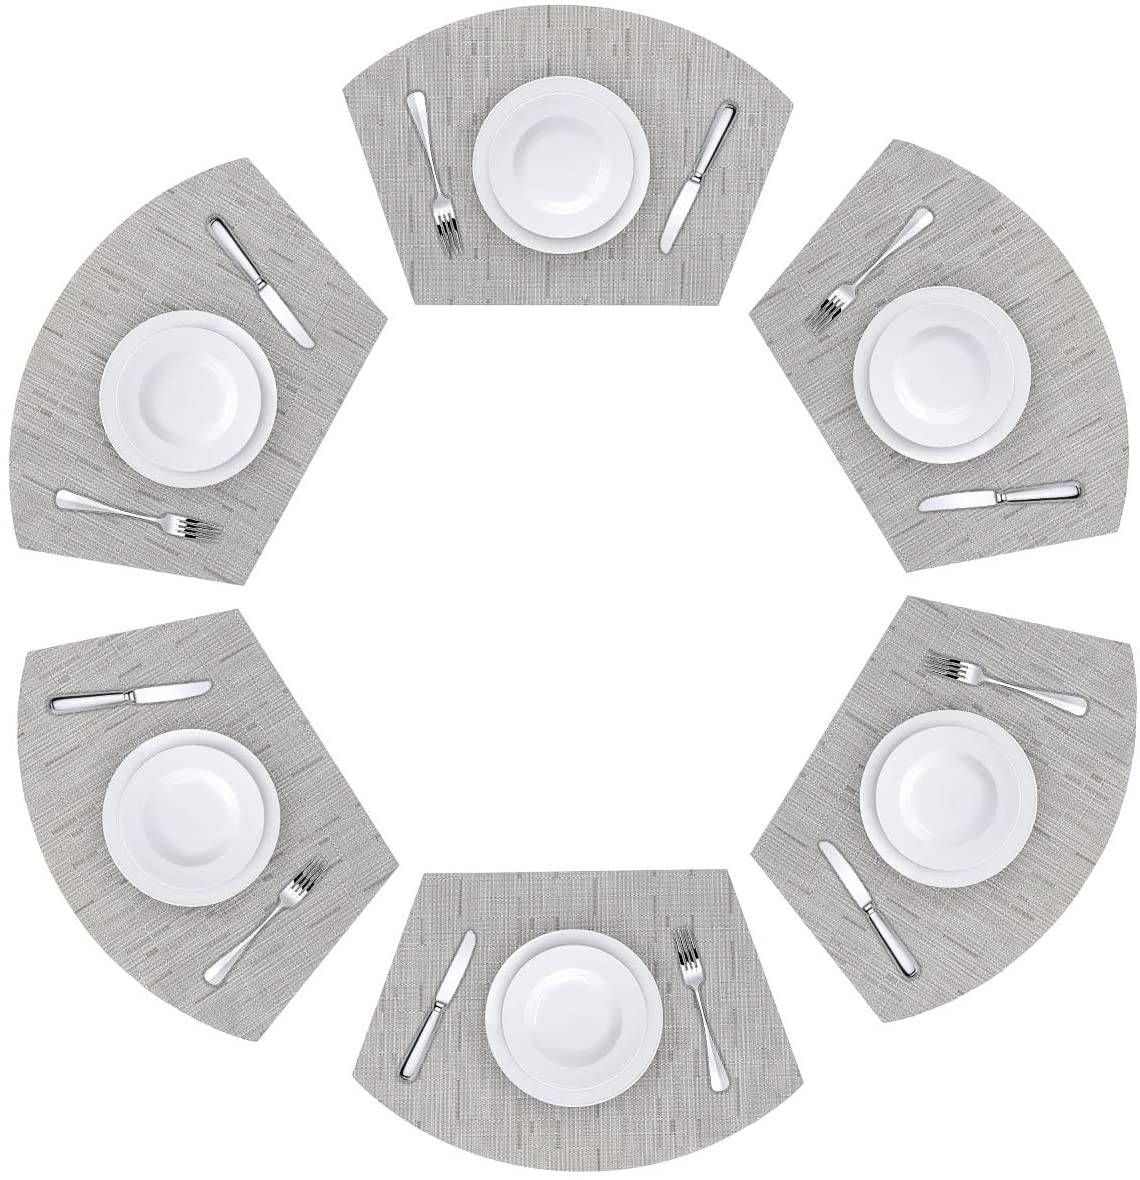 Viomir Round Table Placemats Wedge Placemats Set of 6 Heat Resistant Table Mats Washable (Beige)